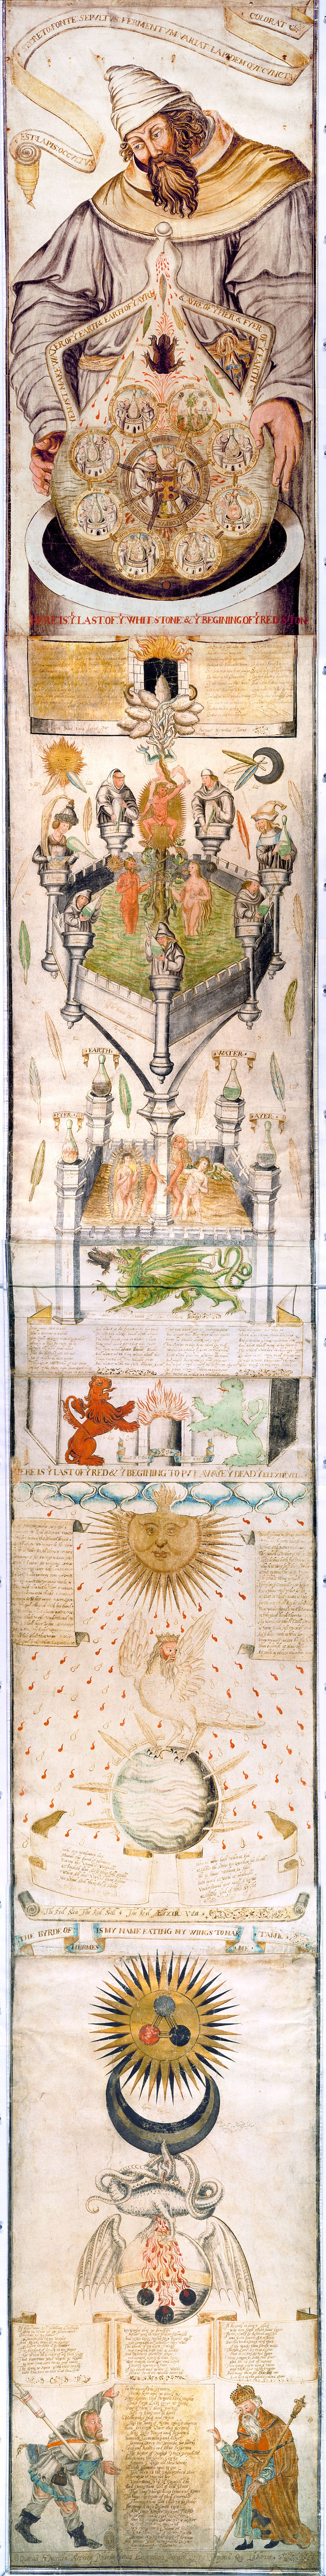 The Ripley scroll, an alchemical manuscript, attributed to George Ripley (c. 1415 – 1490), Canon Regular of the priory at Bridlington in Yorkshire